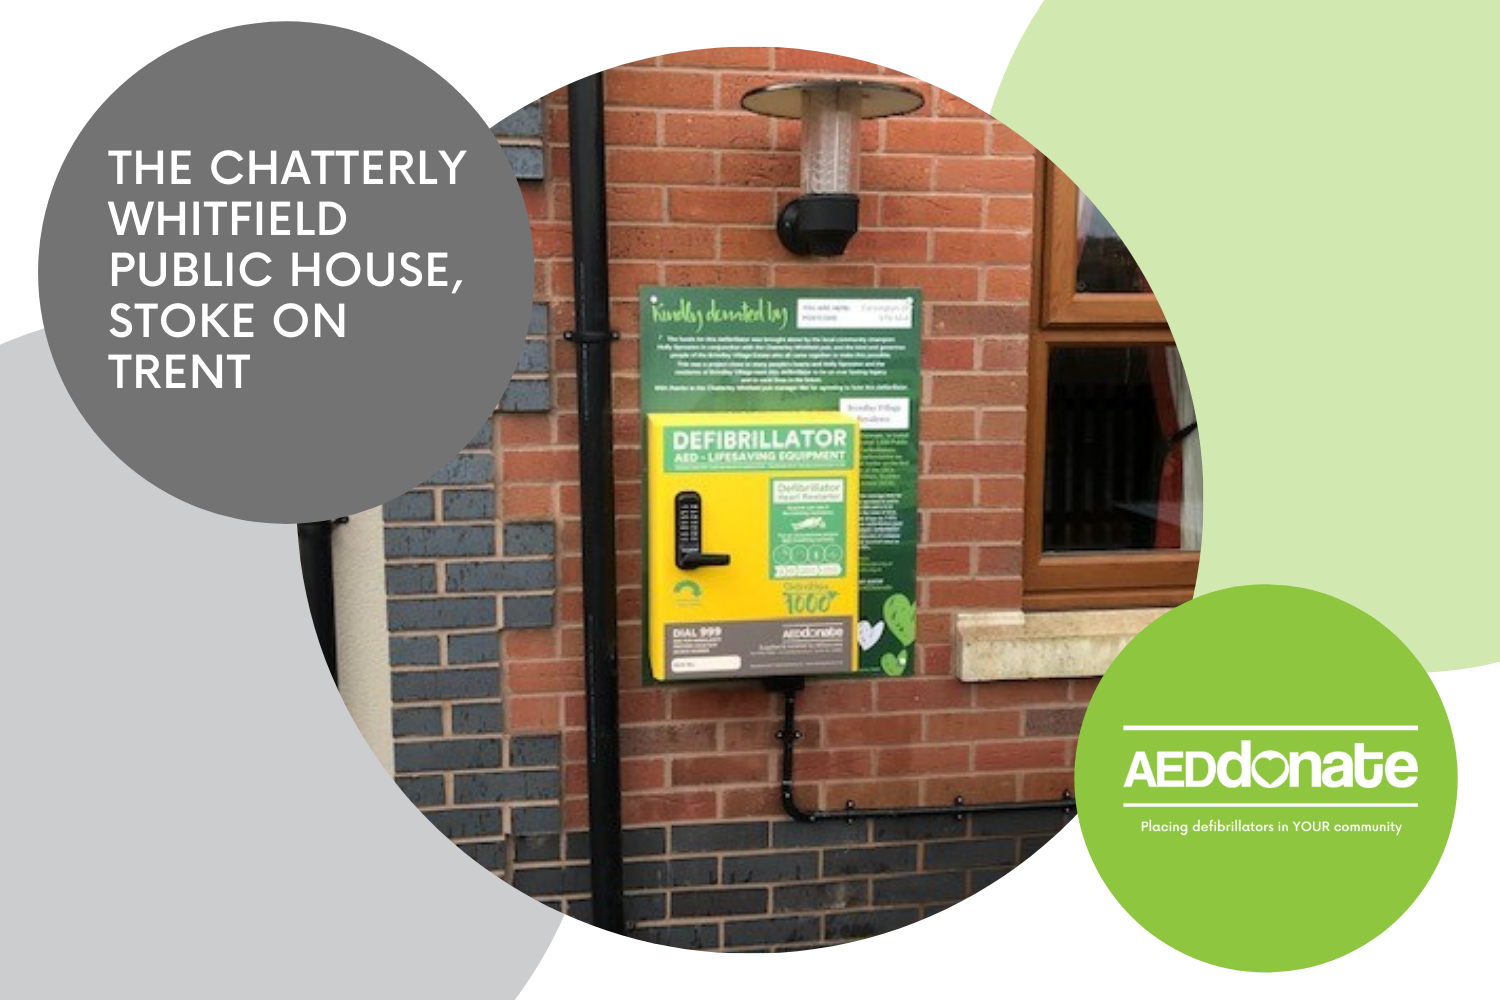 New Public Access Defibrillator Cabinet installed at The Chatterley Whitfield Public House, Stoke-on-Trent